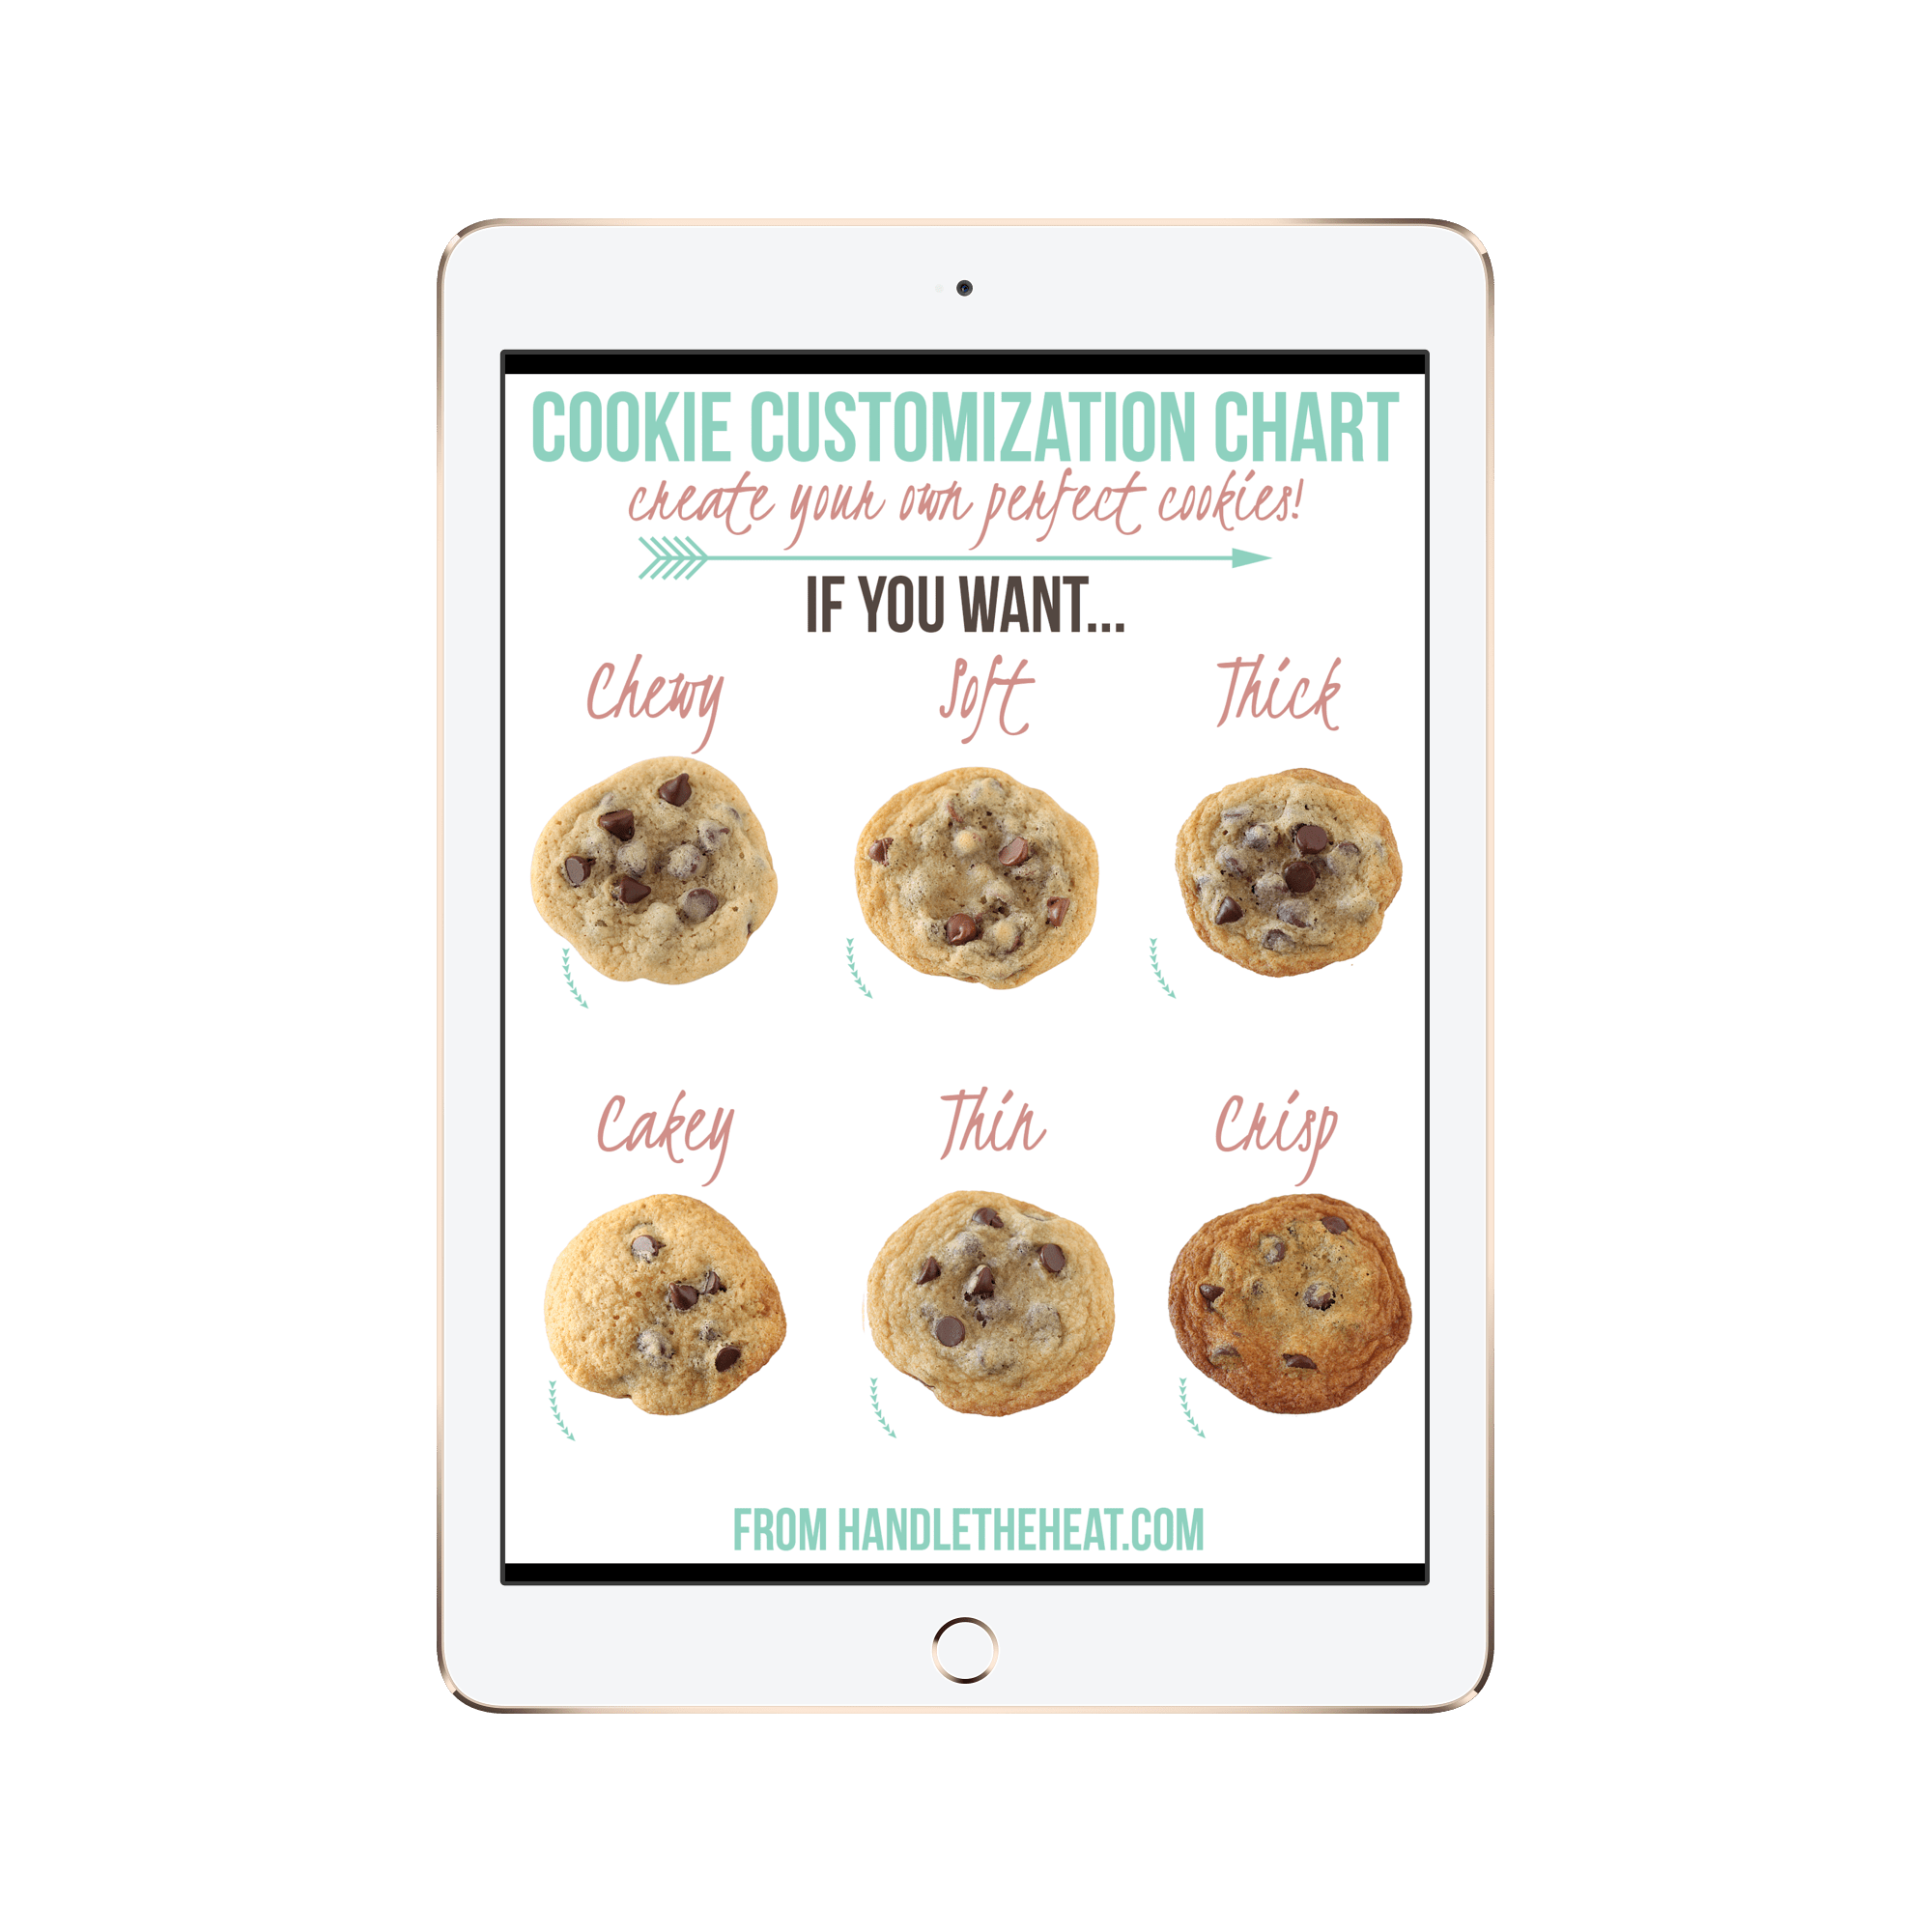 FREE Cookie Customization Guide